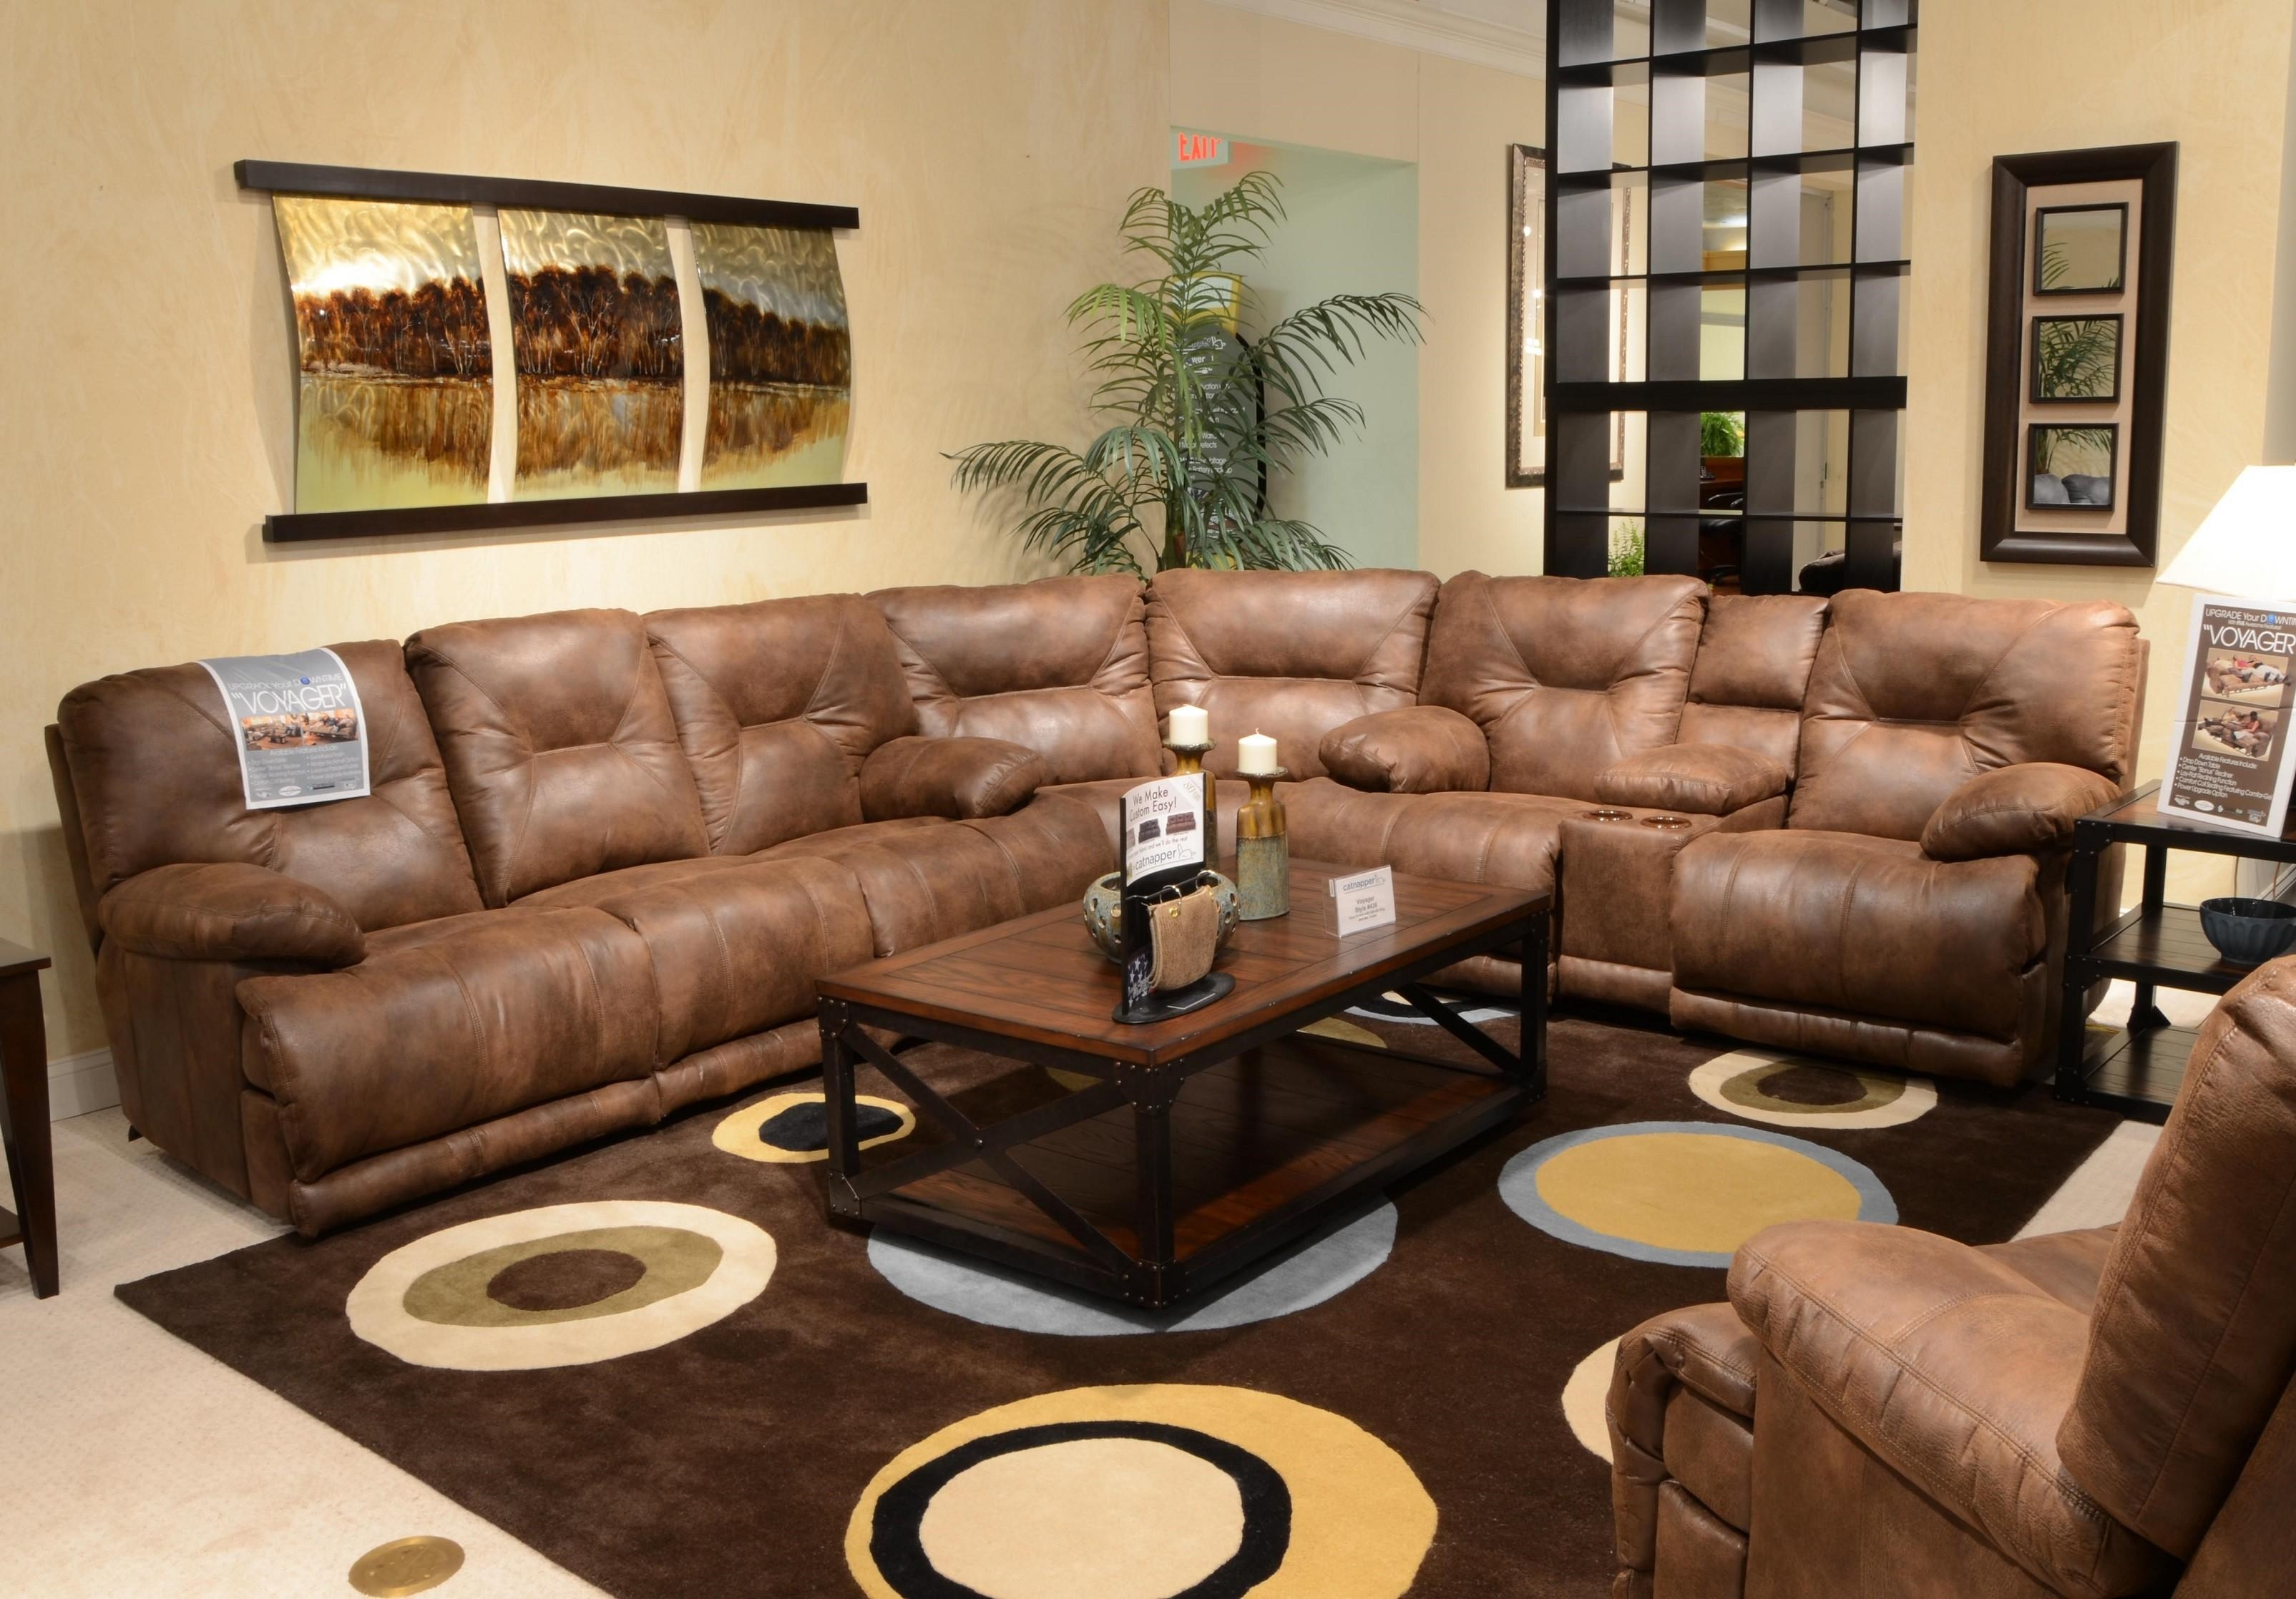 Sectional Sleeper Sofa With Recliners | Sofa Gallery | Kengire Throughout Sectional With Recliner And Sleeper (View 13 of 20)